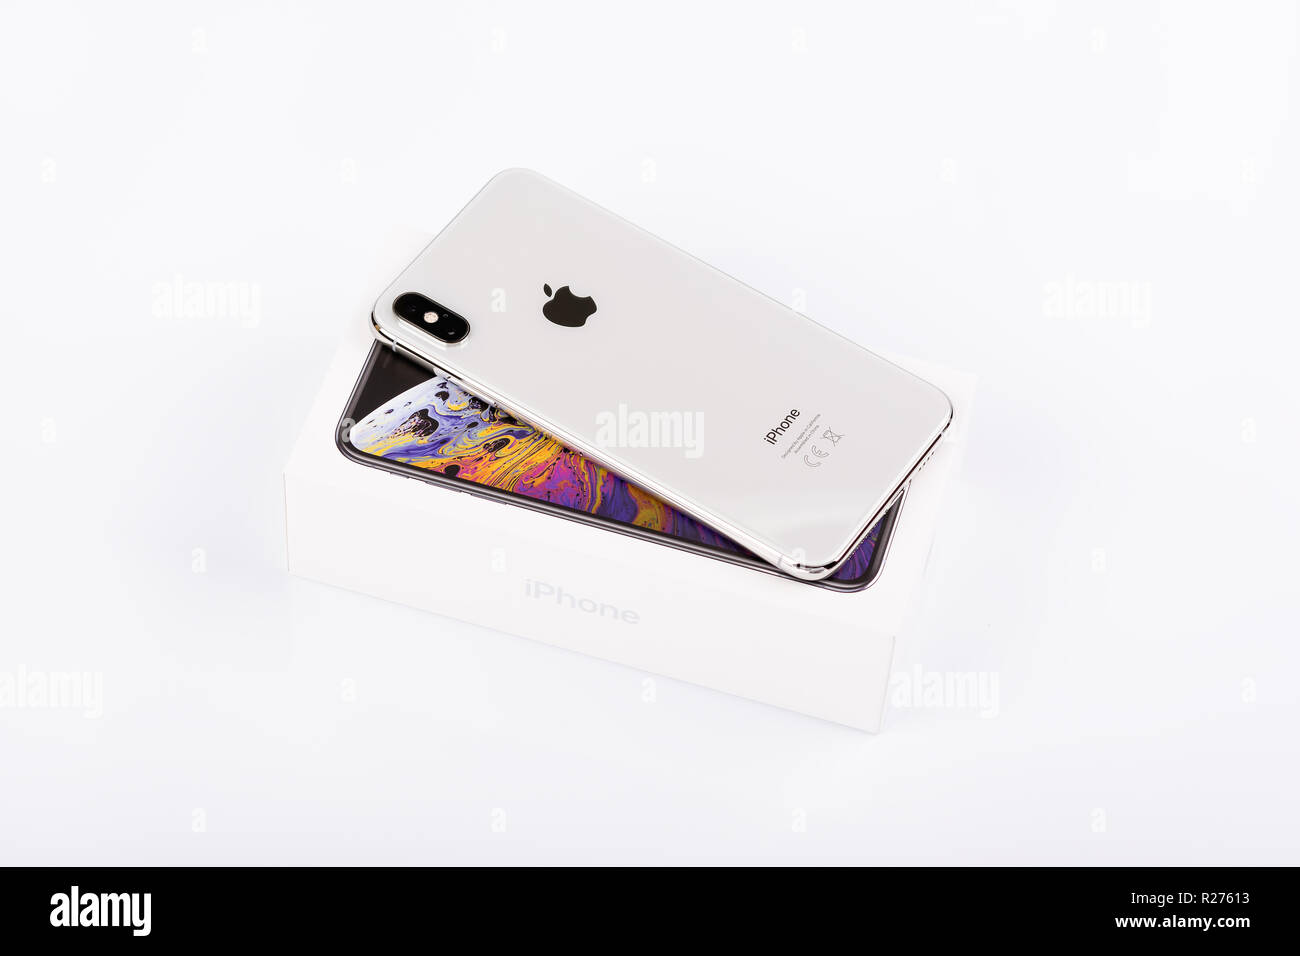 BURGAS, BULGARIA - NOVEMBER 8, 2018: Apple iPhone Xs Max Silver on white background, back view. Stock Photo